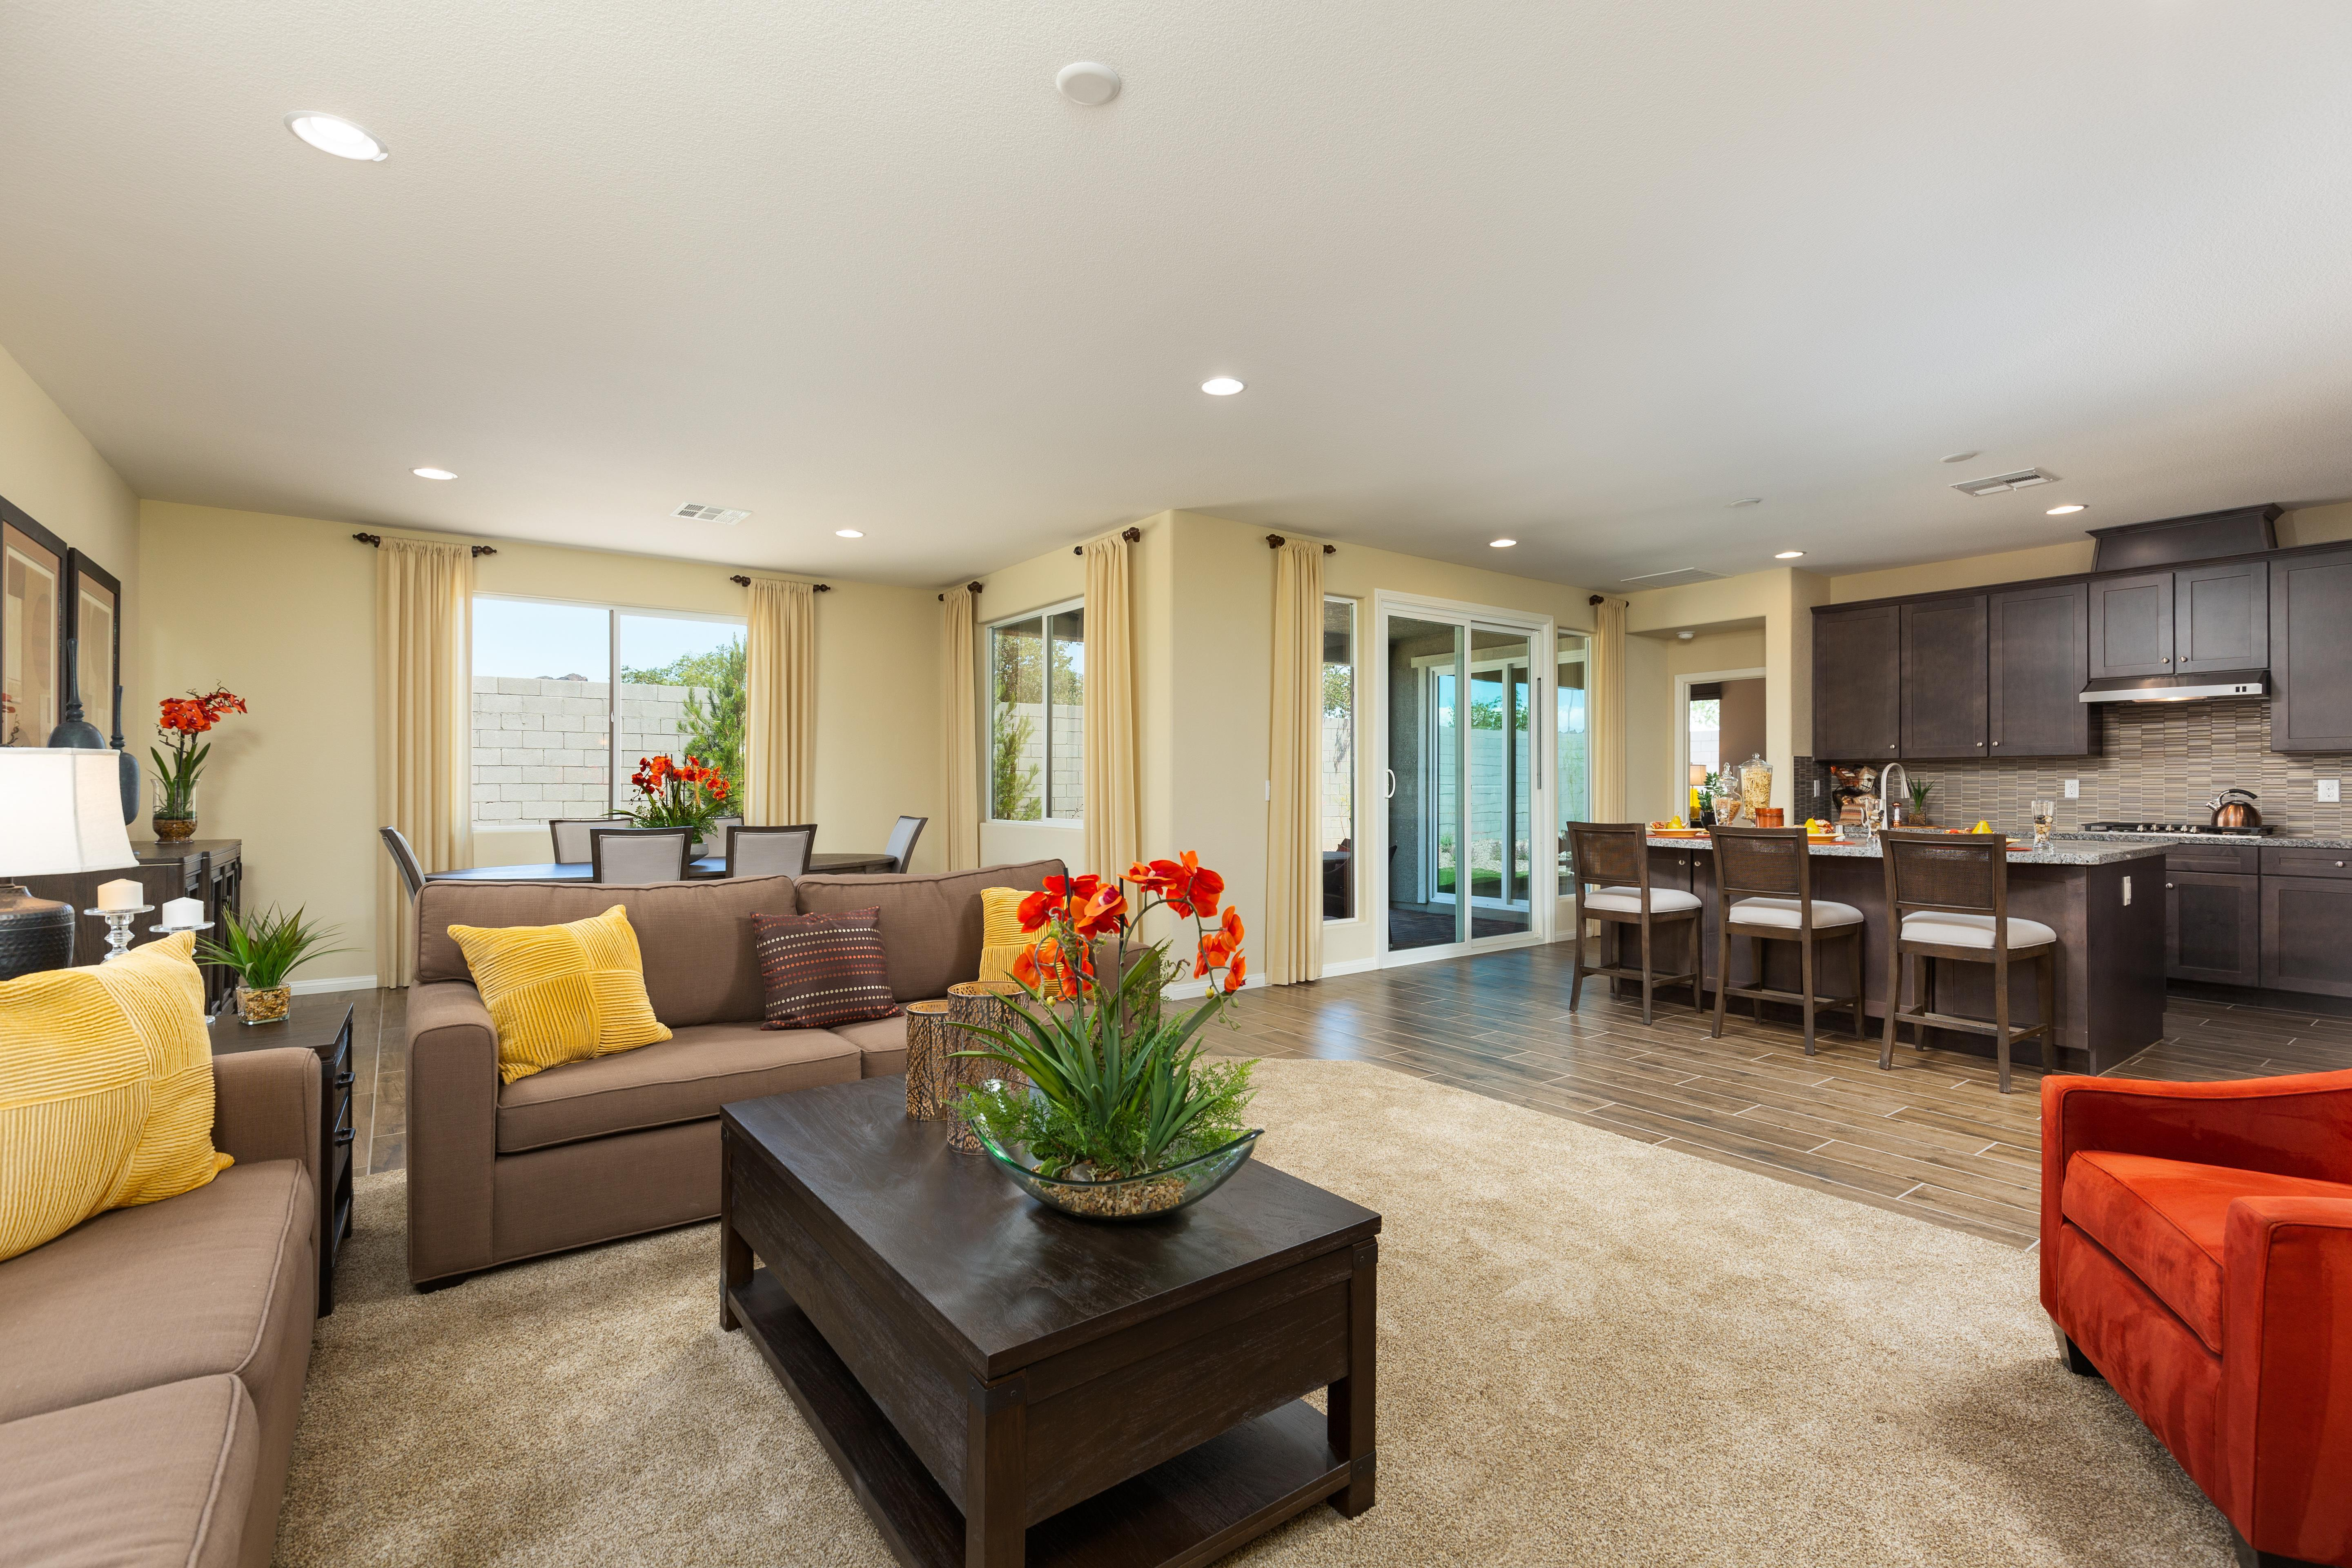 Living Area featured in the Plan 2 By Storybook Homes in Las Vegas, NV